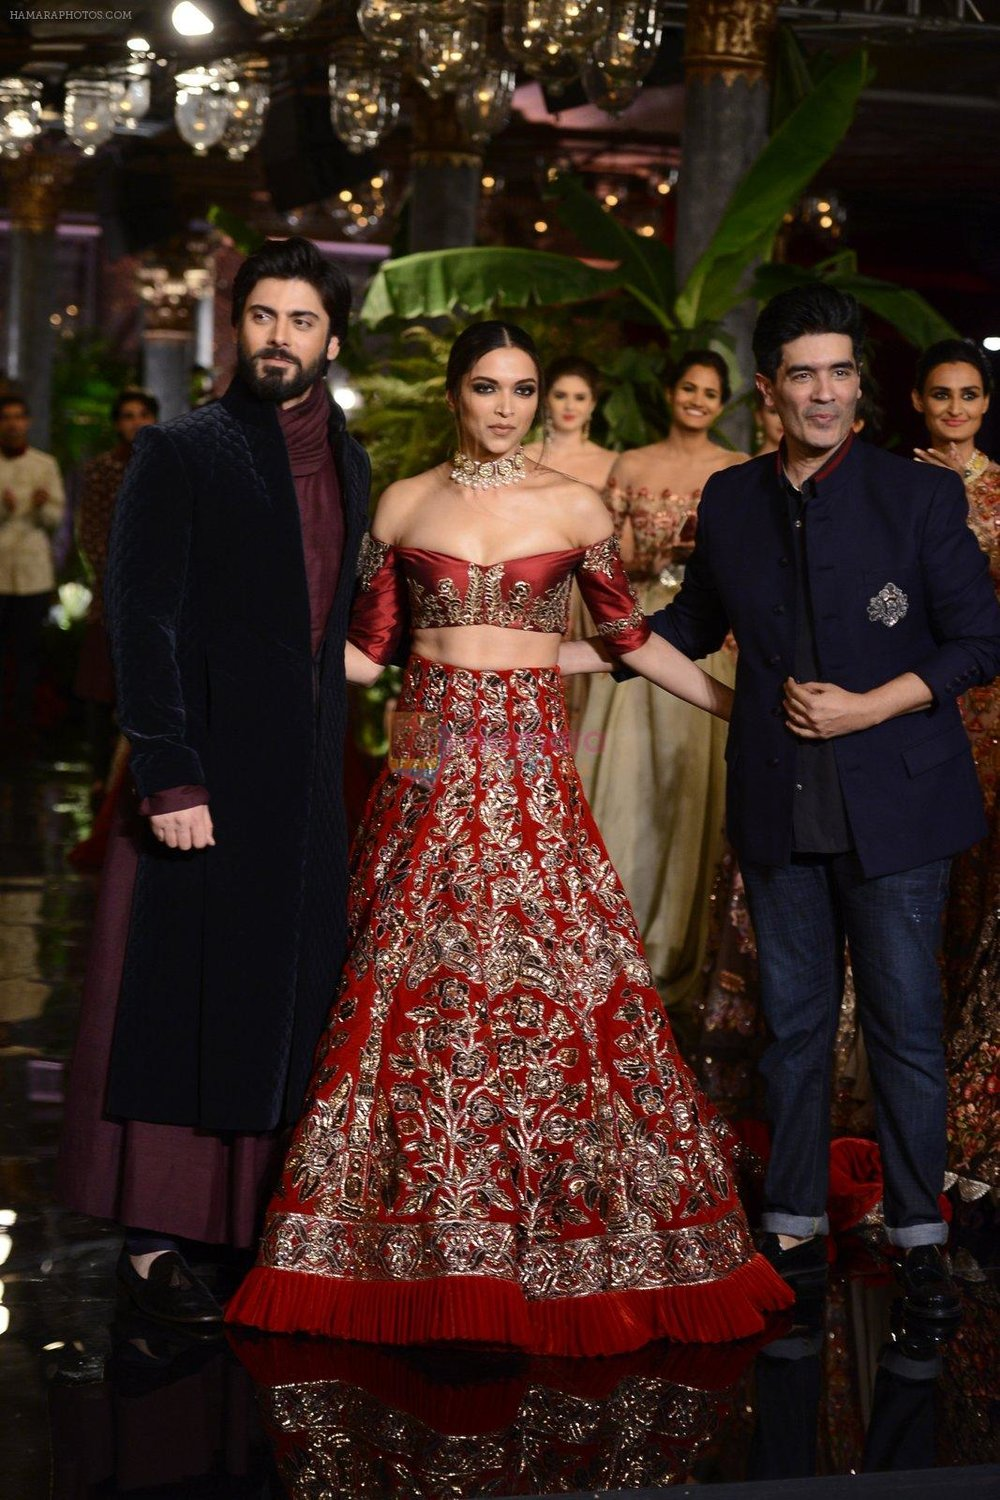 Deepika-Padukone-Manish-Malhotra-Fawad-Khan-during-the-FDCI-India-Couture-Week-2016-at-the-Taj-Palace-on-July-21-2016.jpg